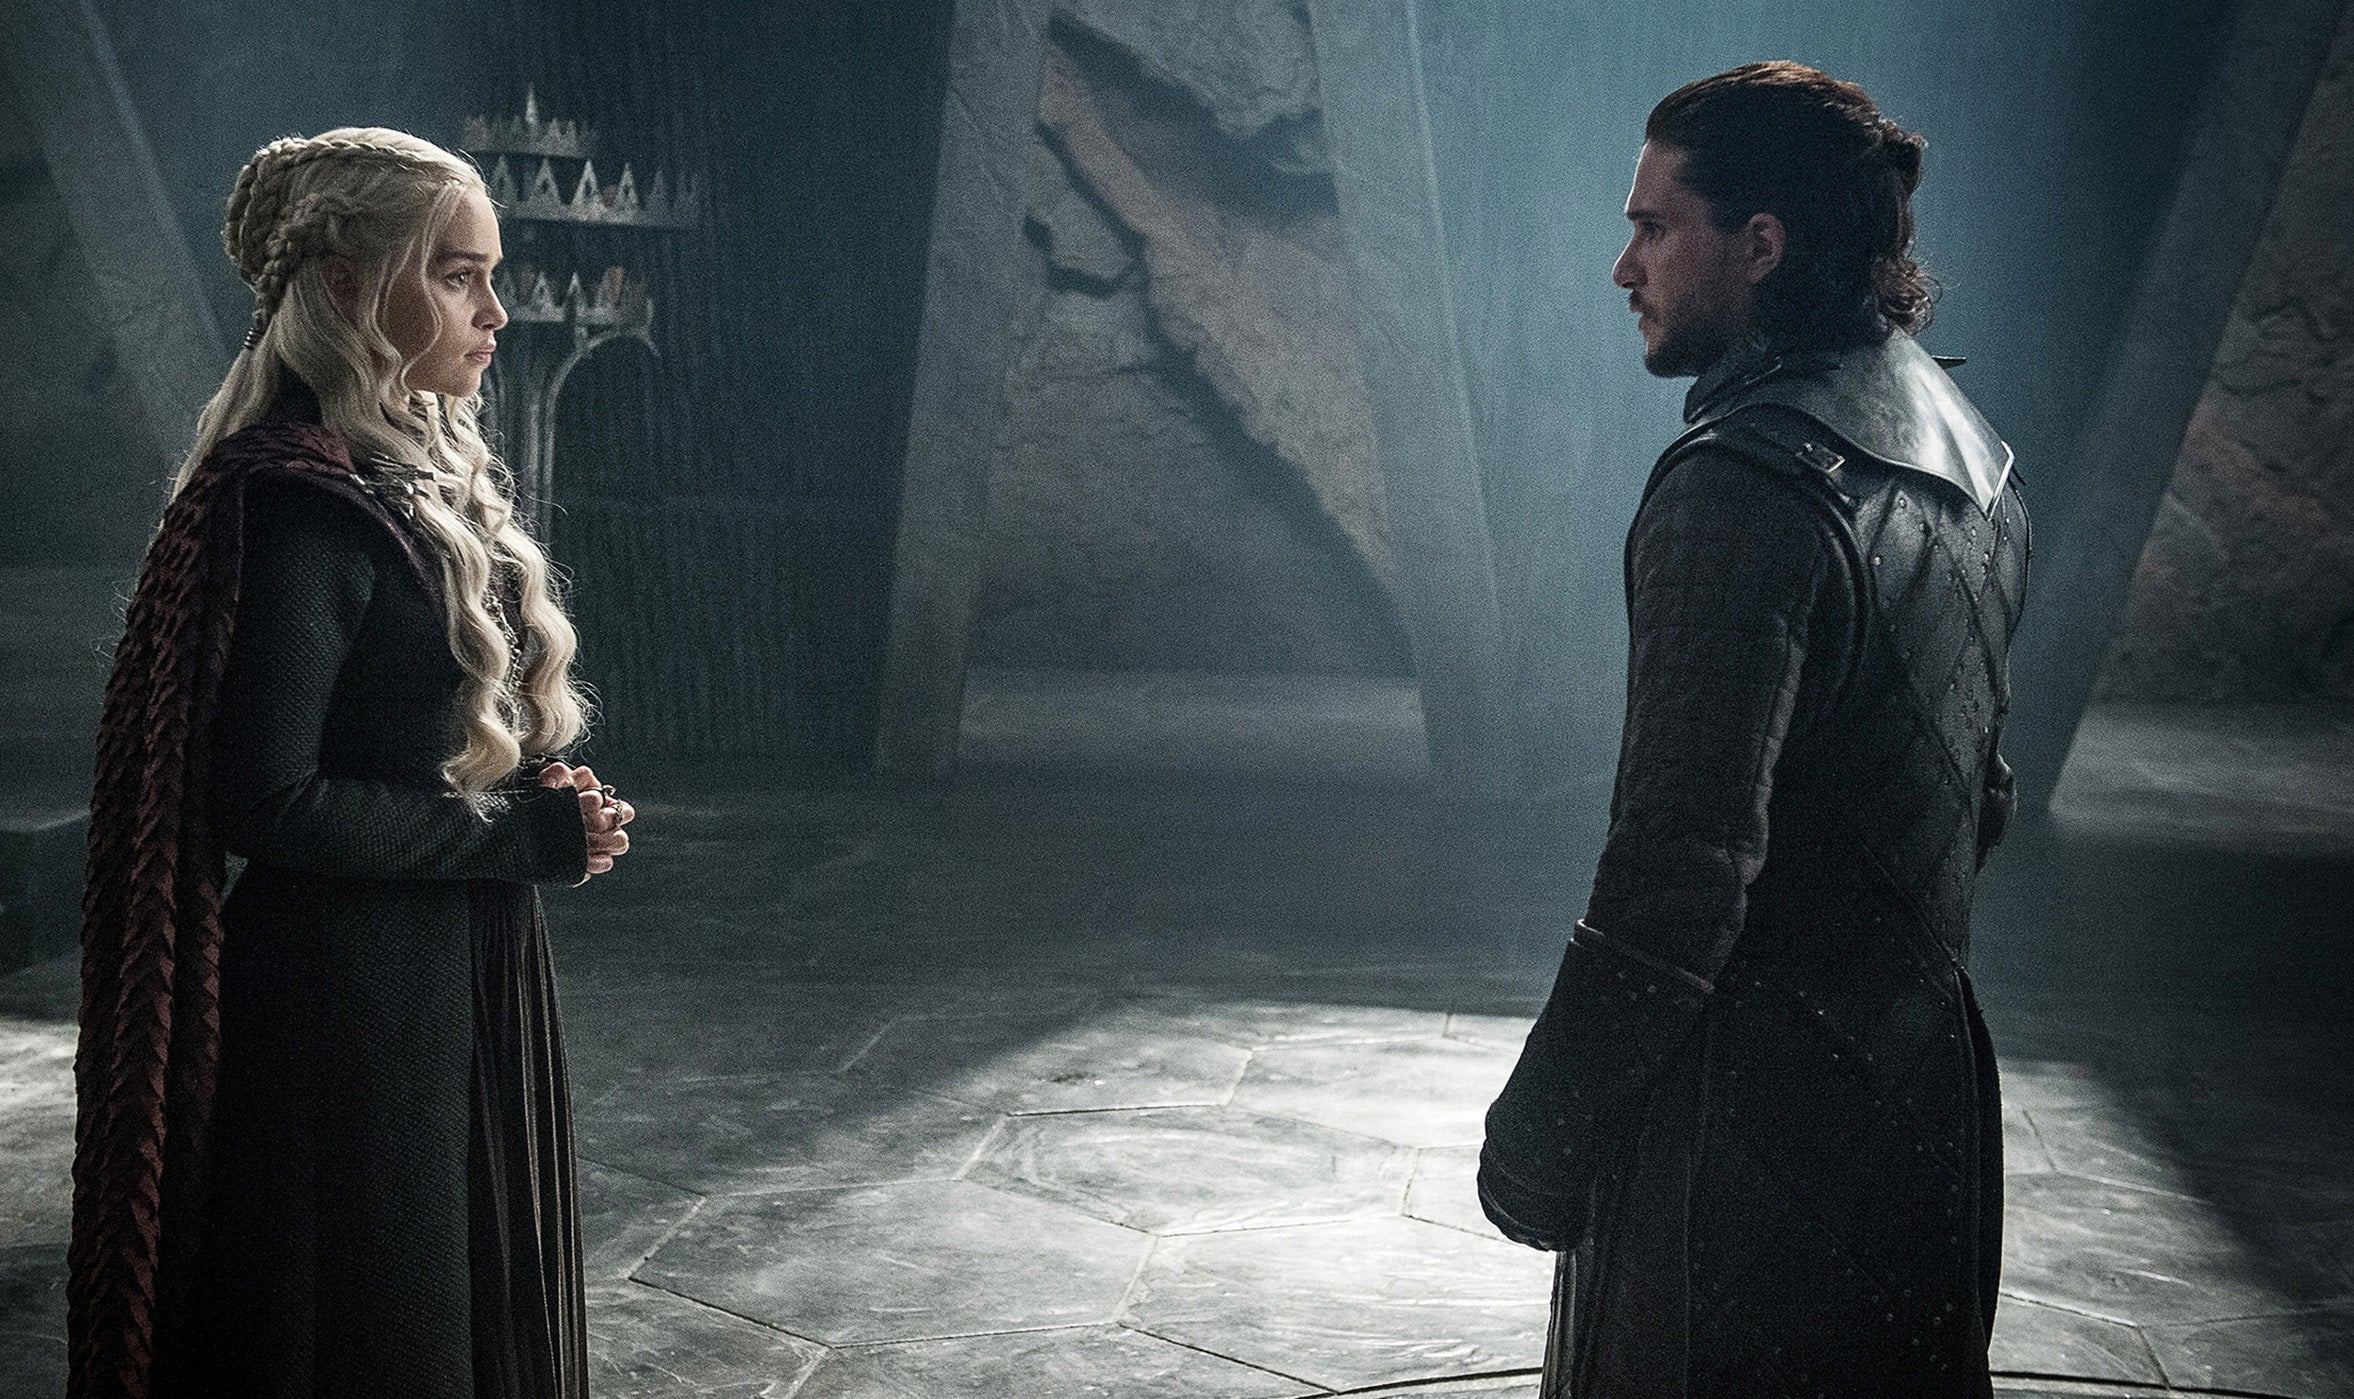 game of thrones season 8 episode 5 Jon Snow Aegon Targaryen Daenerys Targaryen